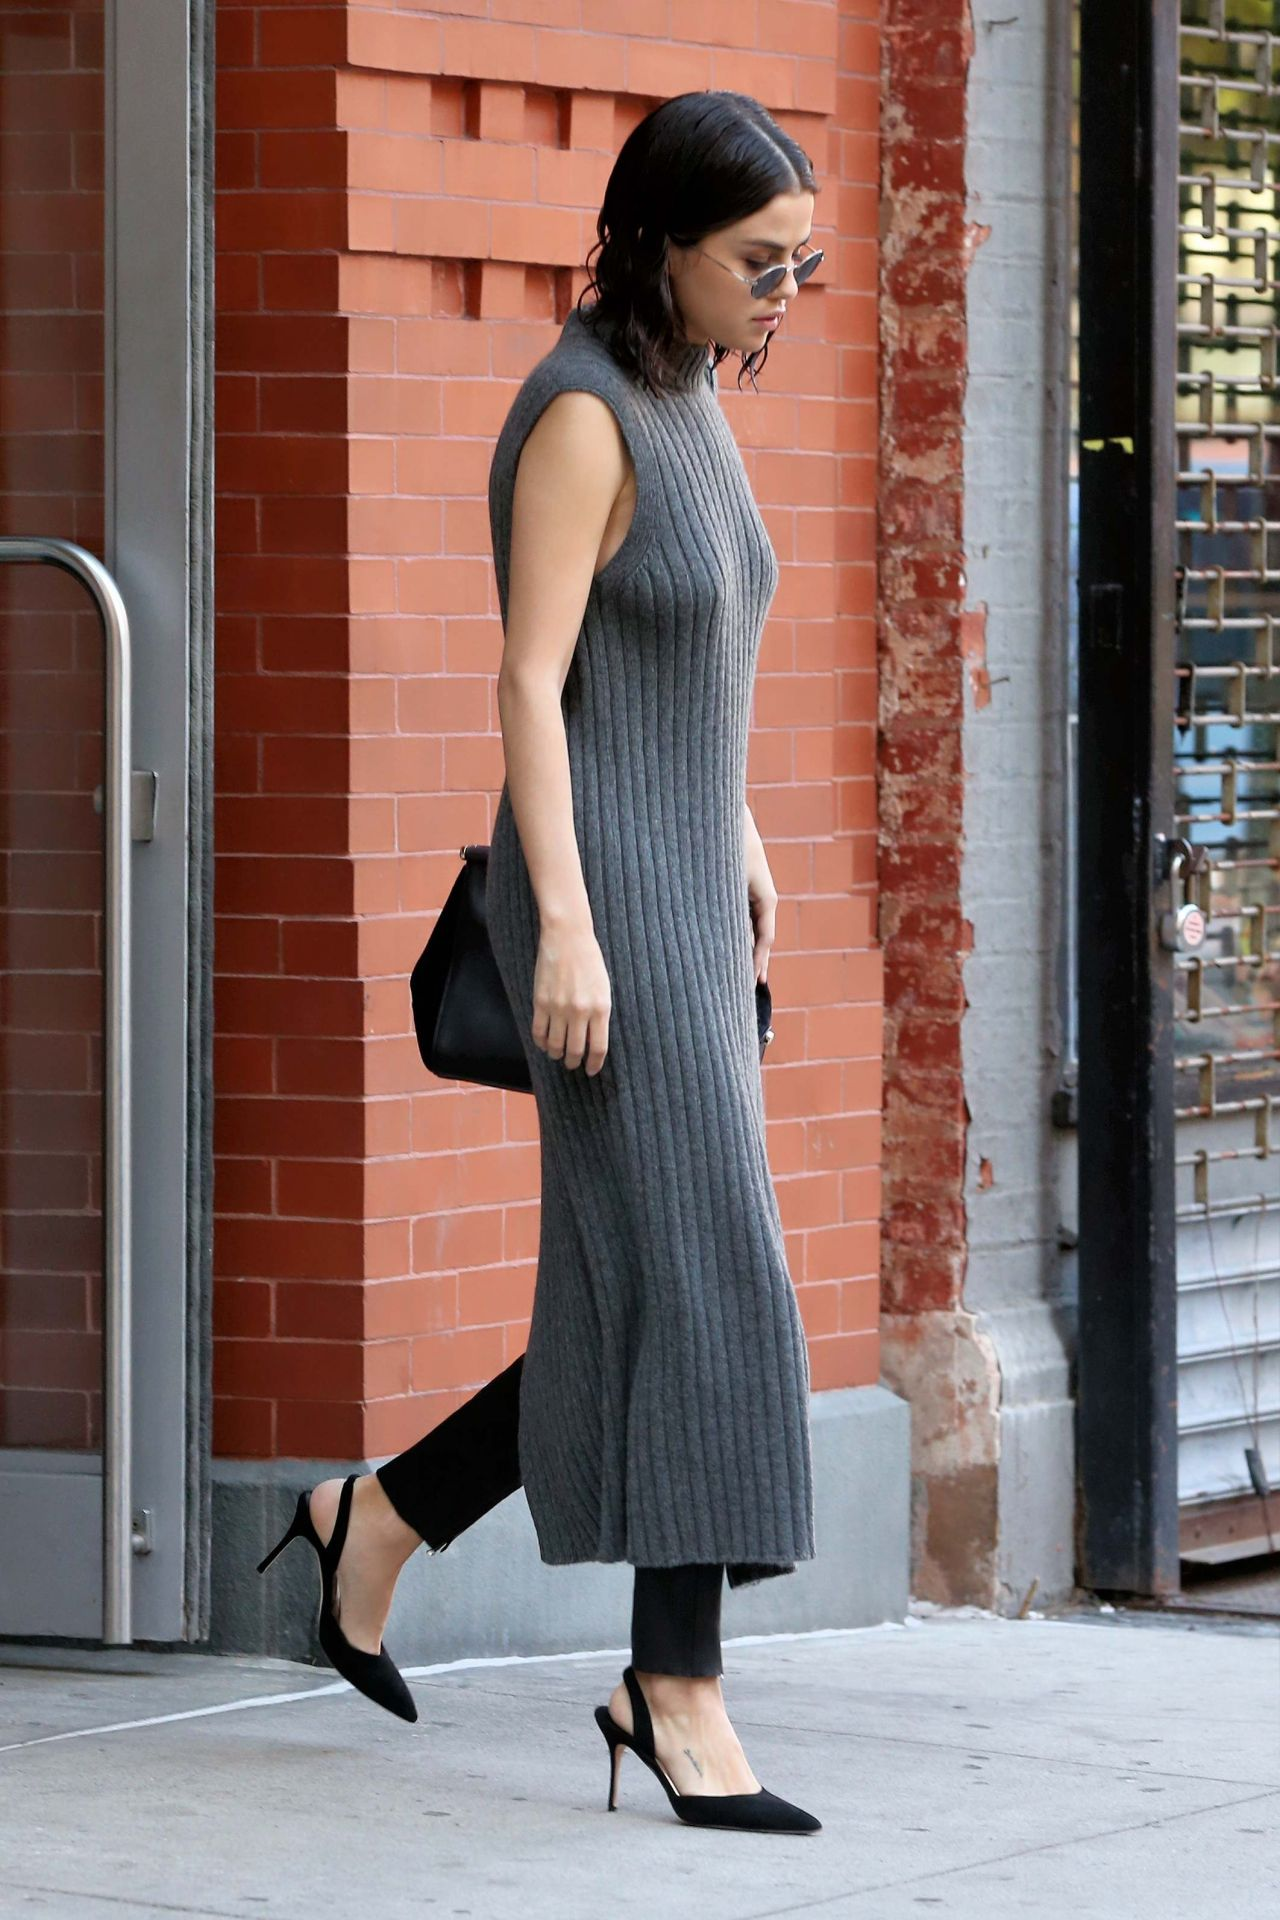 selena gomez style and fashion leaving her apartment in